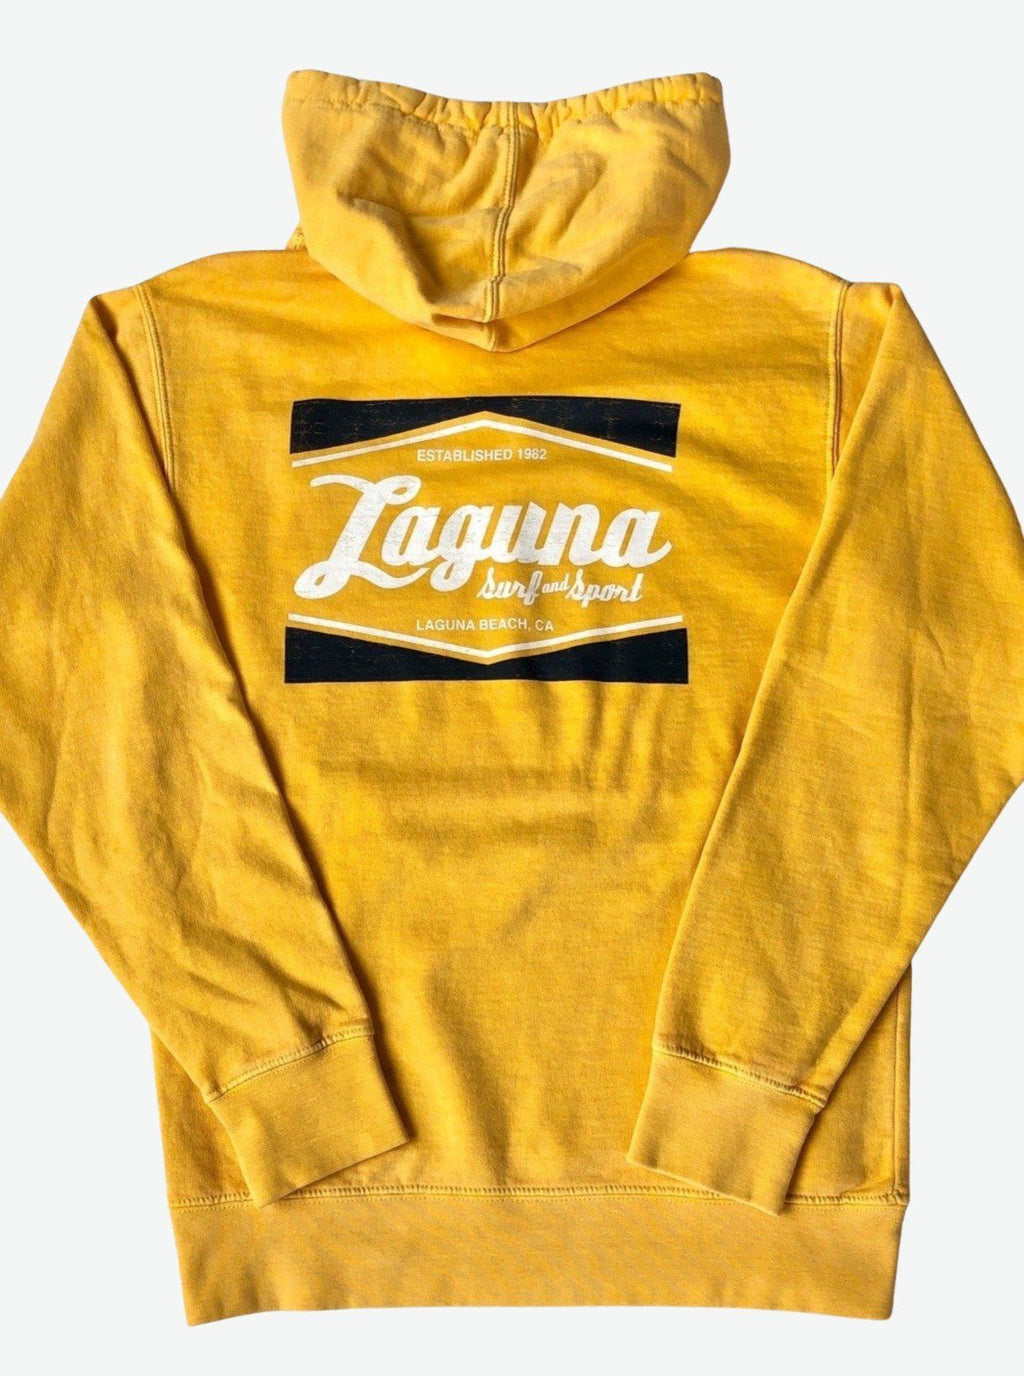 LS&S CLASSIC BOX  Adult Unisex Bomber Hoodie  (More Colors Available)  - Laguna Surf & Sport